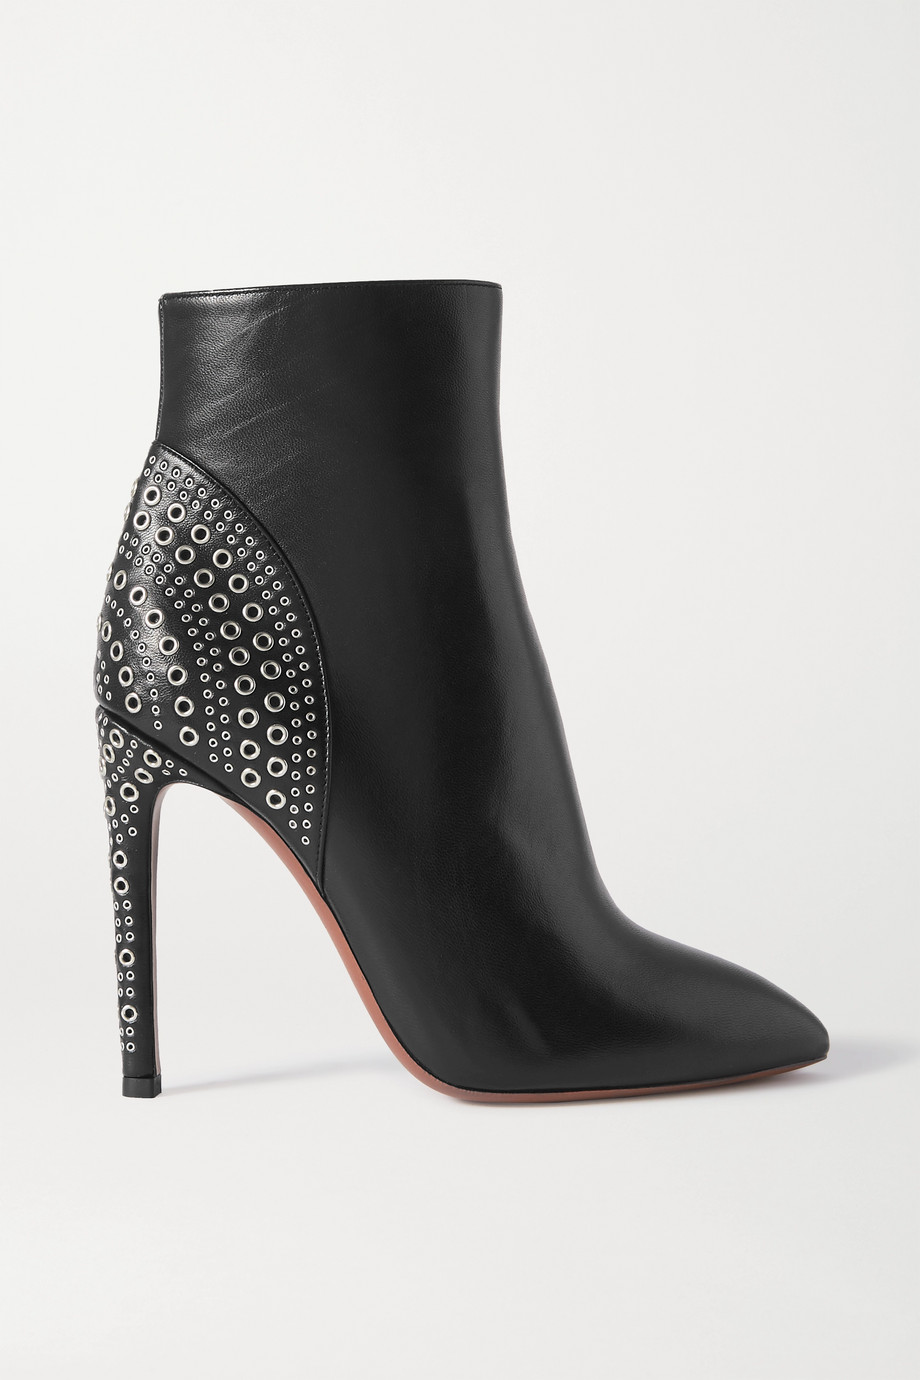 ALAÏA 110 eyelet-embellished leather ankle boots